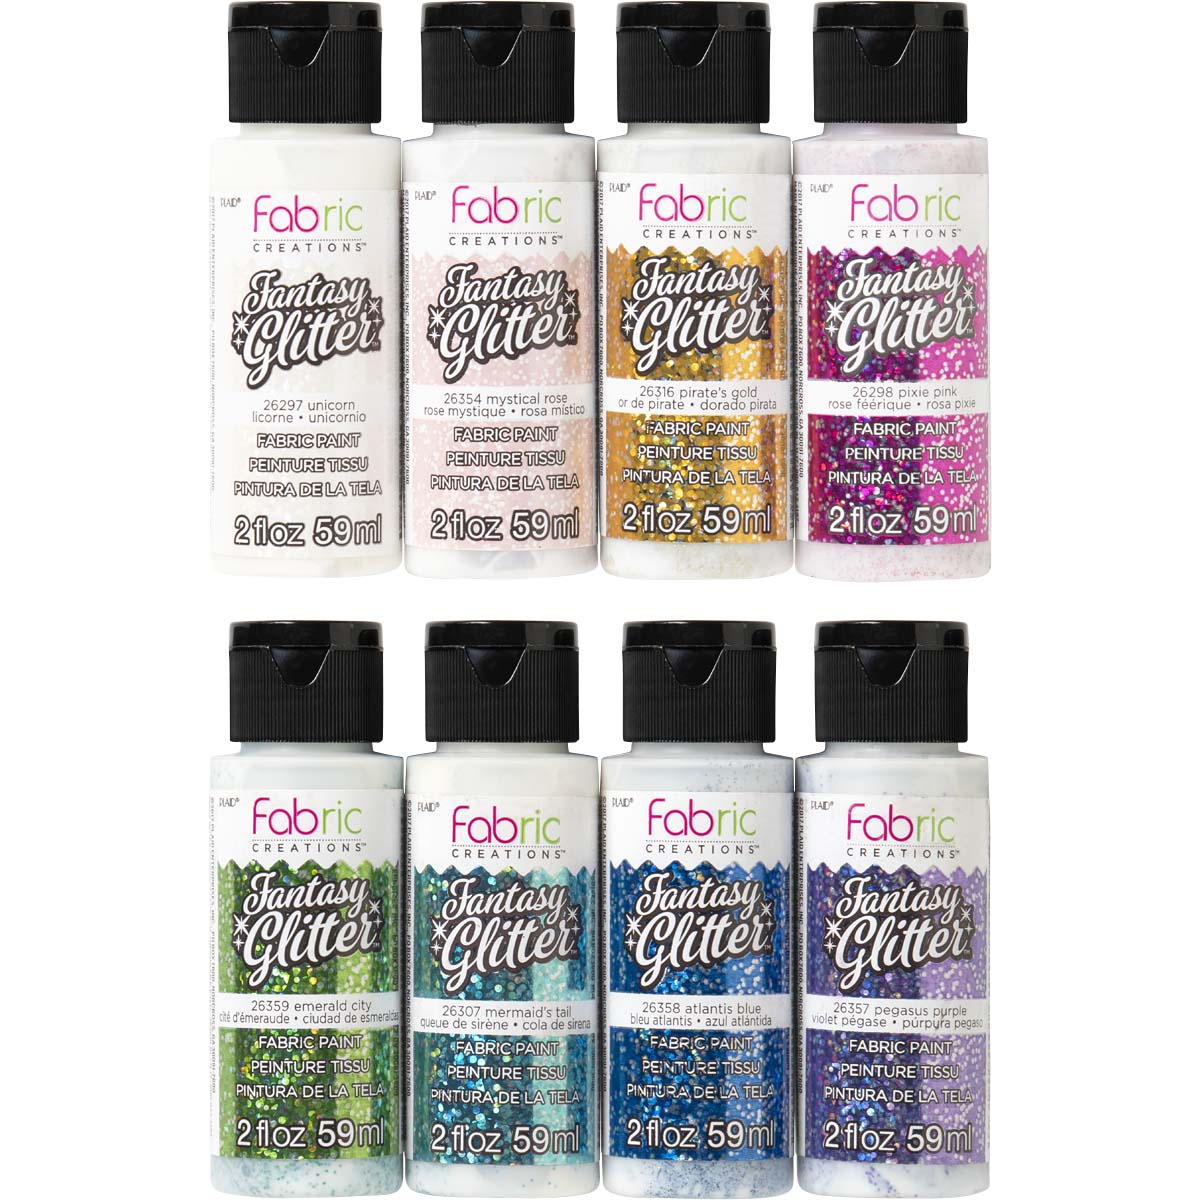 Fabric Creations™ Fantasy Glitter™ Fabric Paint Set Ultimate 8 color set